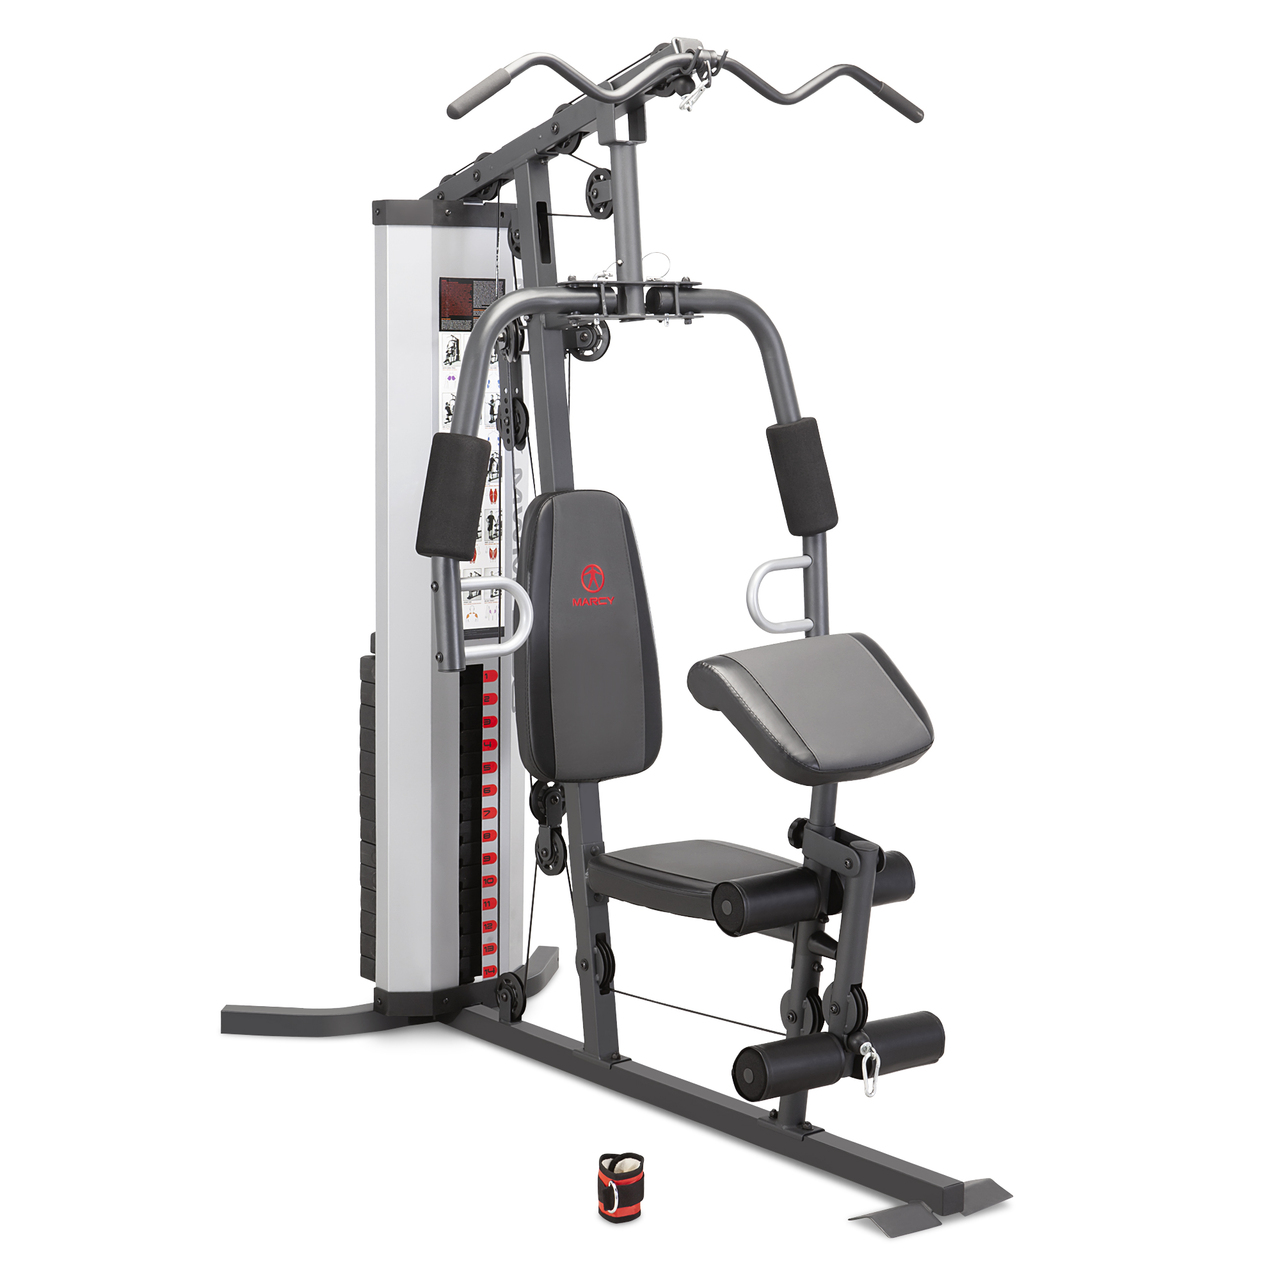 The Marcy 150 Lb Weight Stack Home Gym - MWM-988